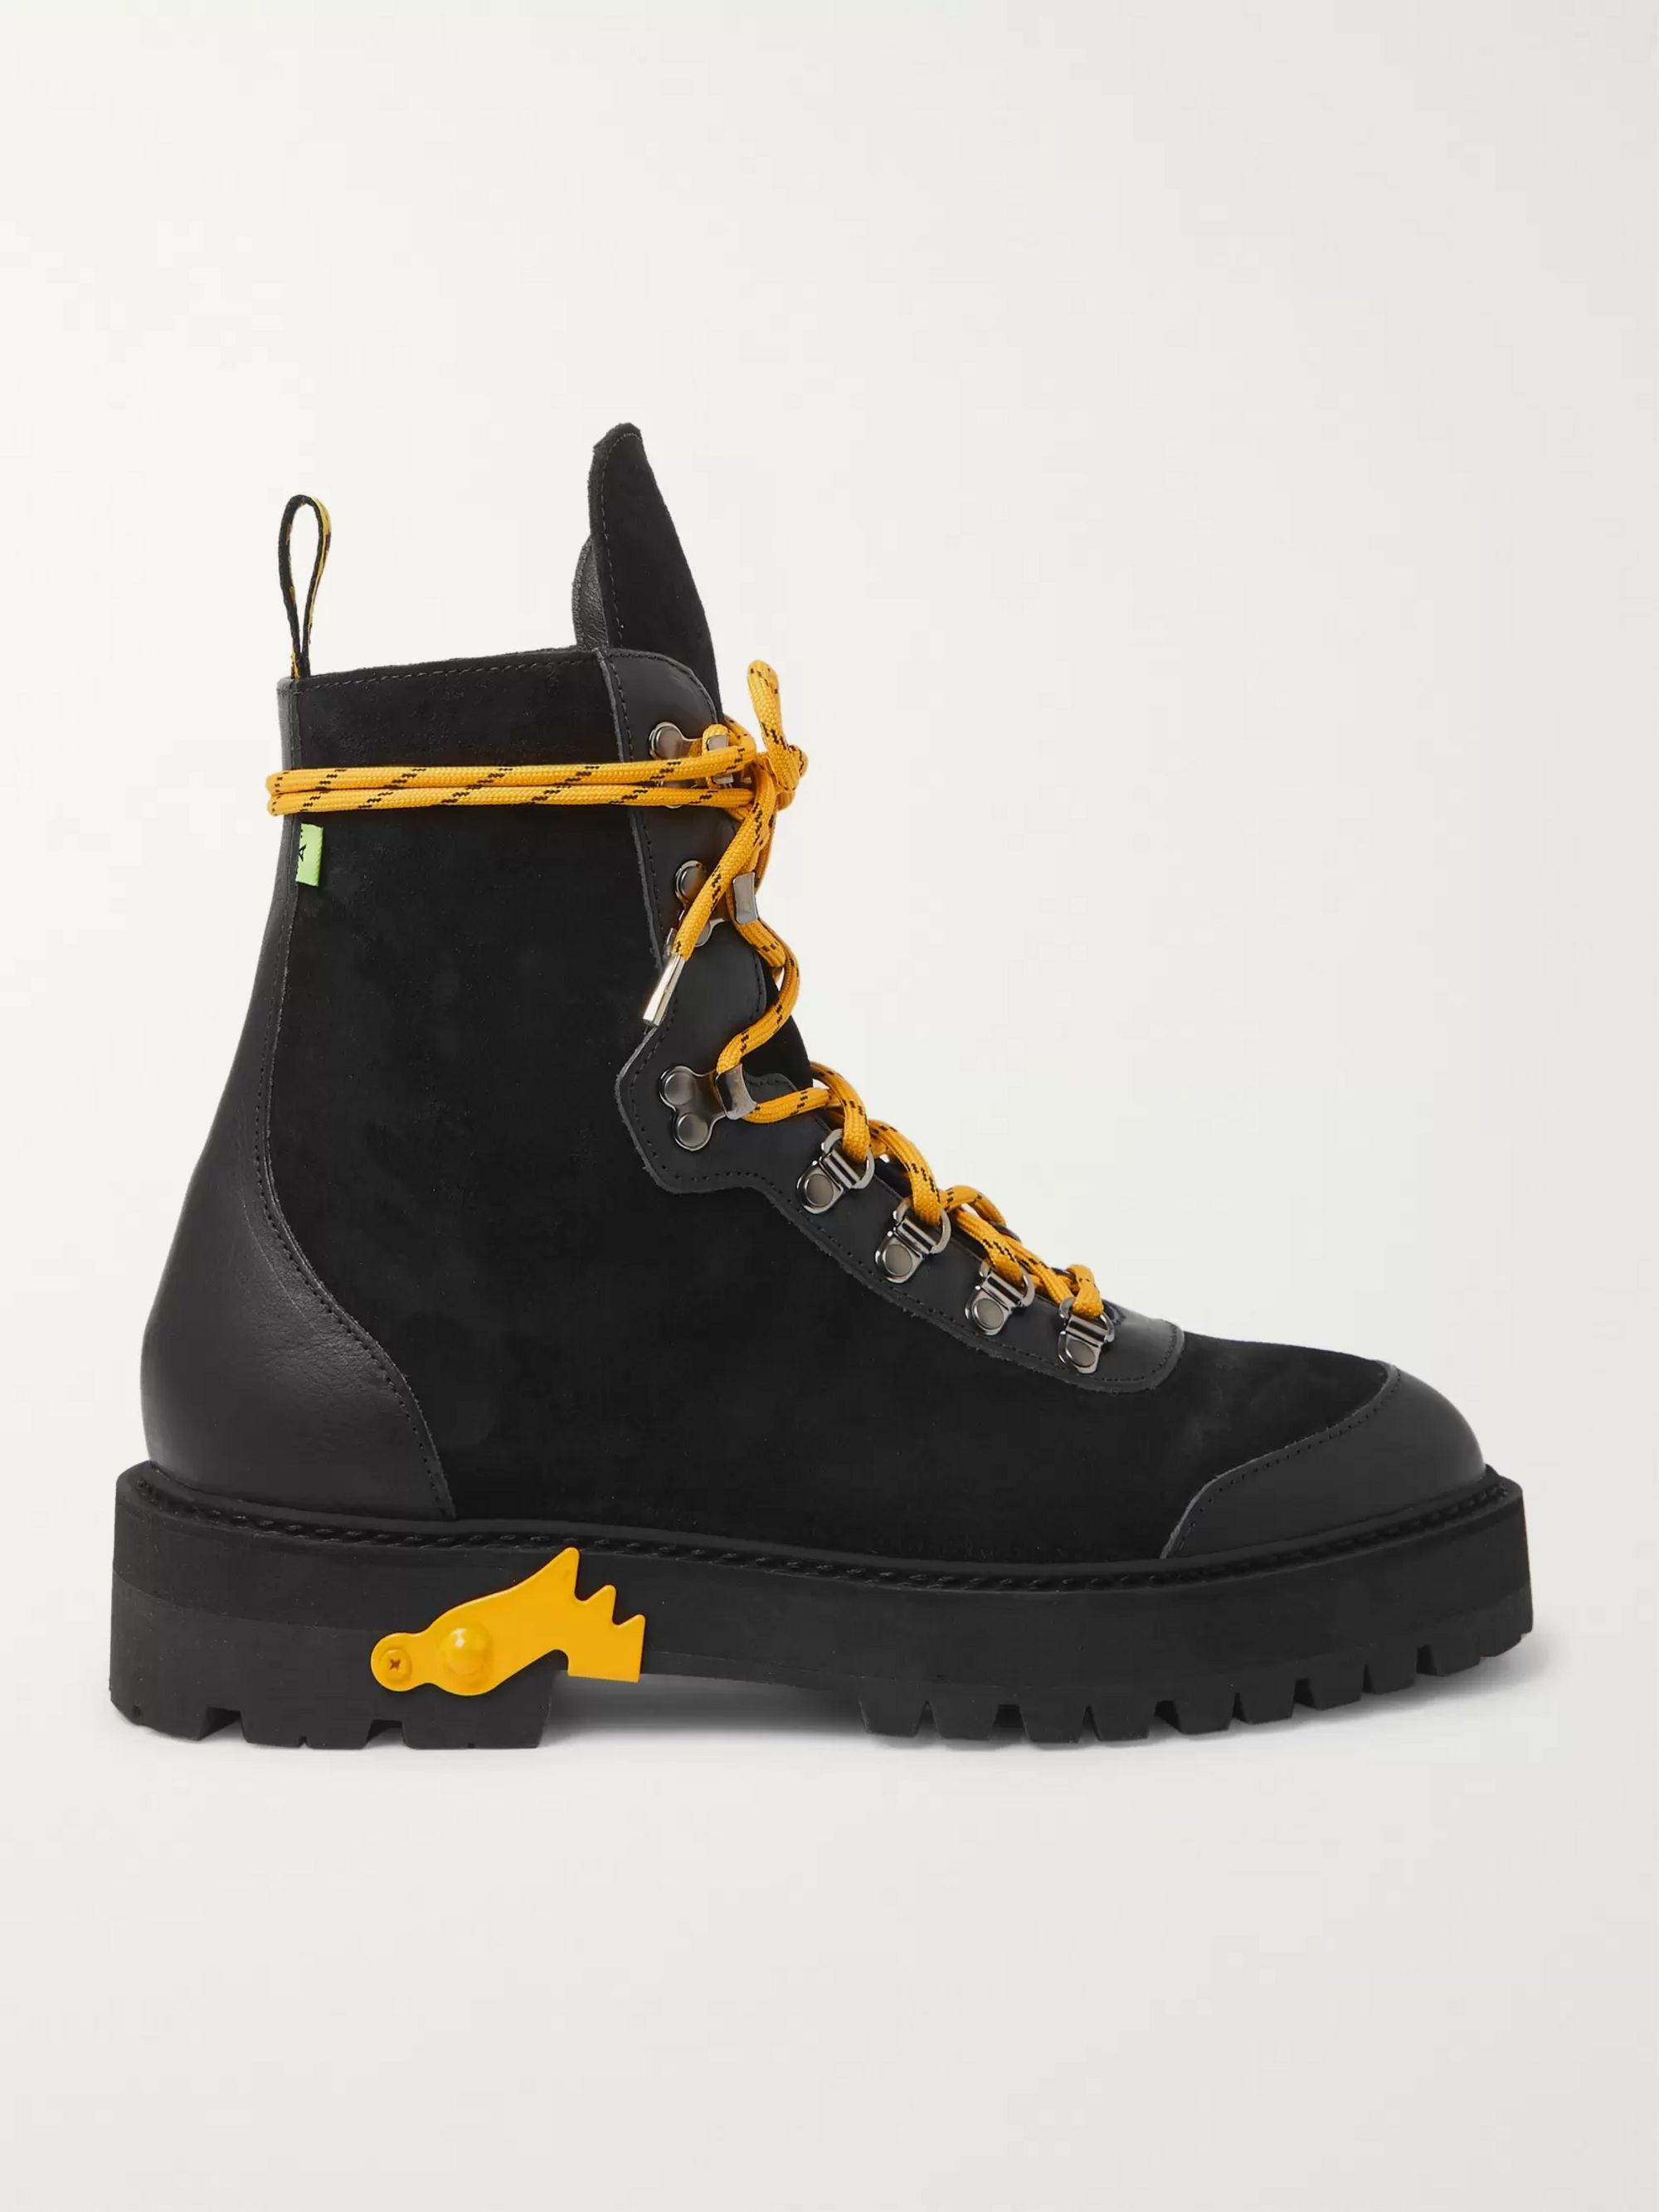 Off-White Leather-Trimmed Suede Boots